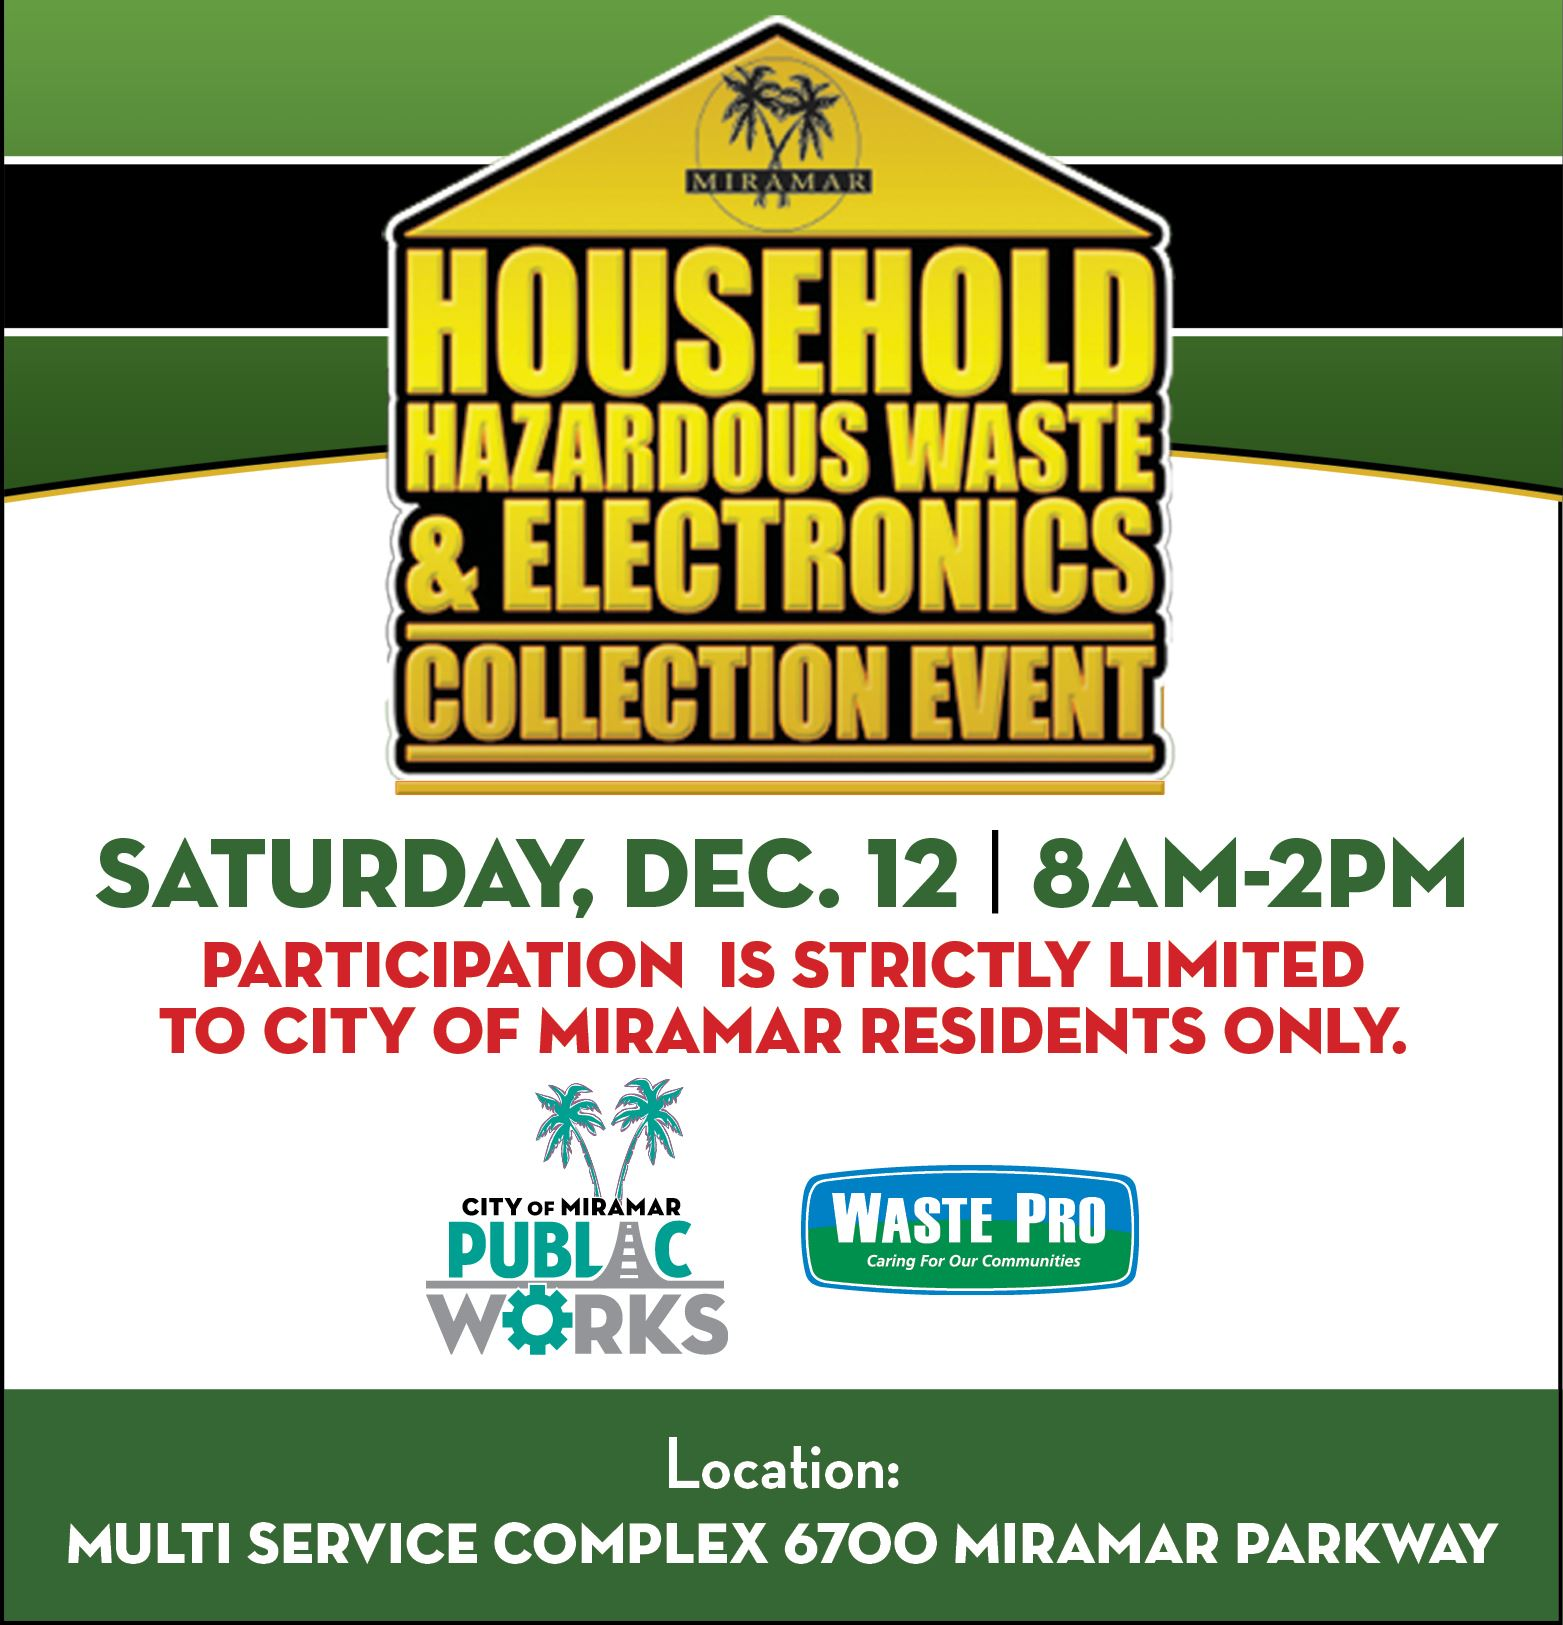 Household Hazardous Waste and Electronics Collection December 12 2020 - Home Page Banner